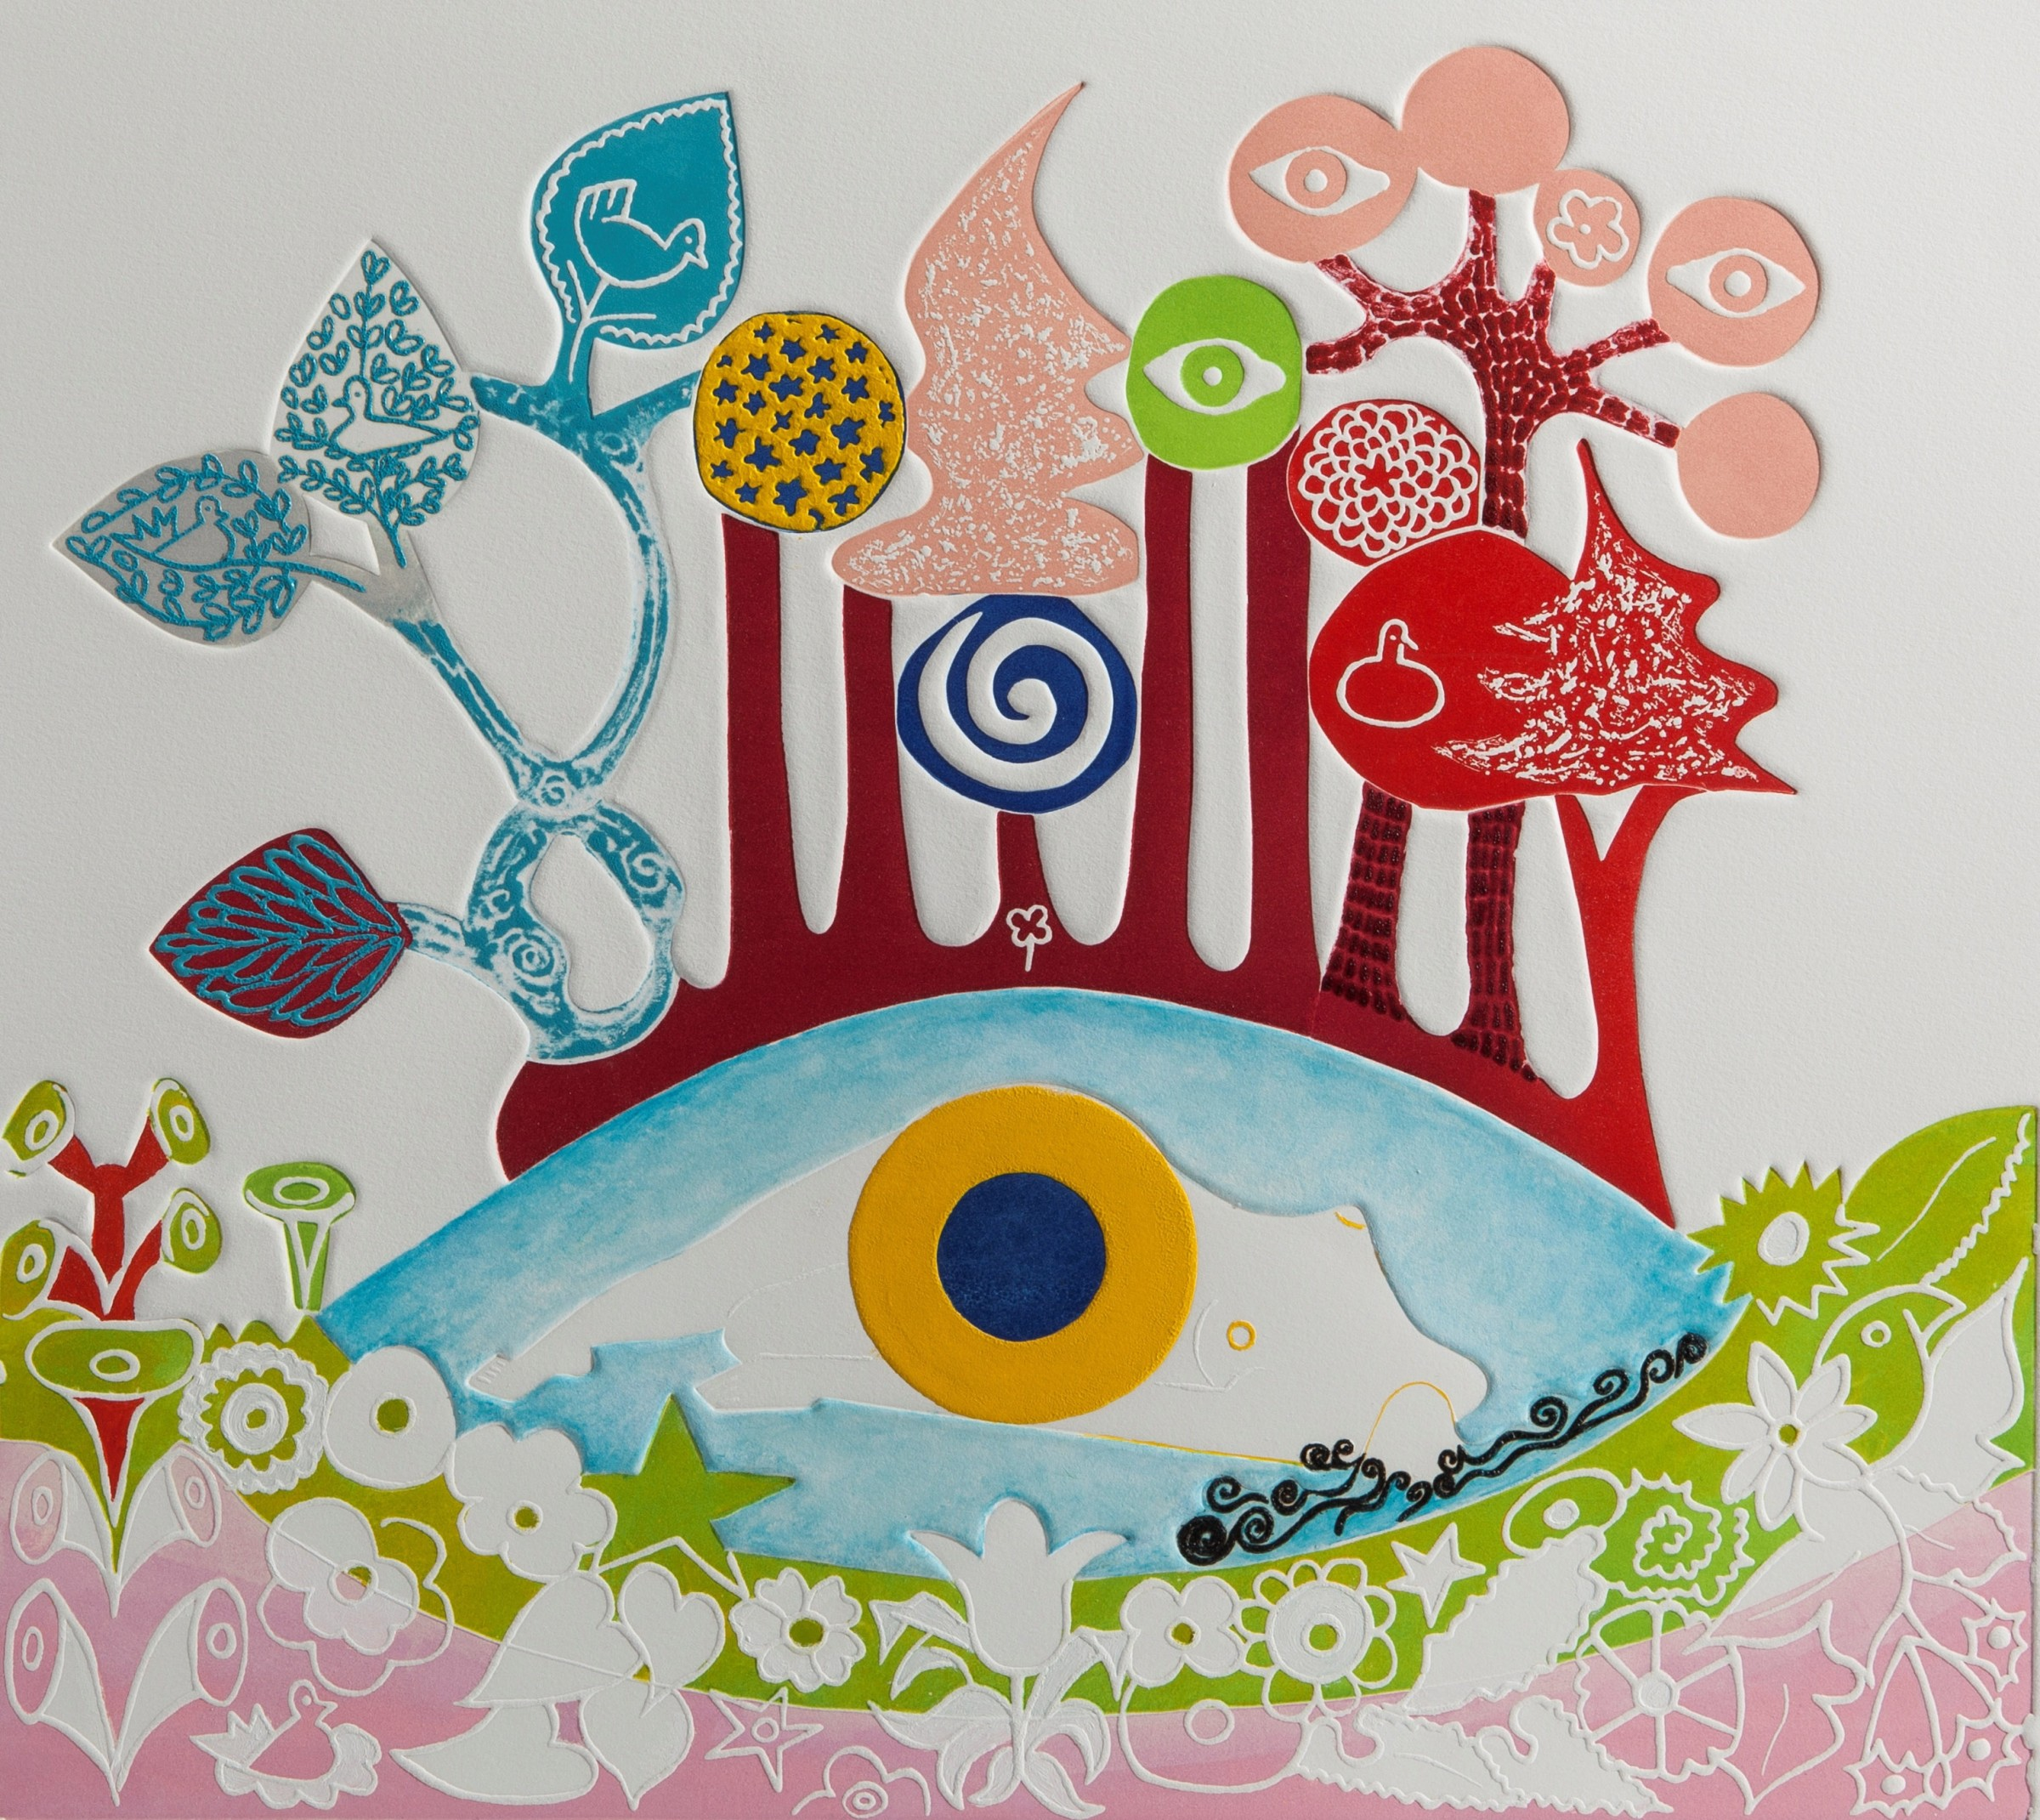 <span class=&#34;link fancybox-details-link&#34;><a href=&#34;/artists/73-carmen-gracia-re/works/9410/&#34;>View Detail Page</a></span><div class=&#34;artist&#34;><span class=&#34;artist&#34;><strong>Carmen Gracia RE</strong></span></div><div class=&#34;title&#34;><em>There Lies Titania Some Time of the Night Lulled in Flowers and Dancing and Delight</em></div><div class=&#34;medium&#34;>colour etching</div>